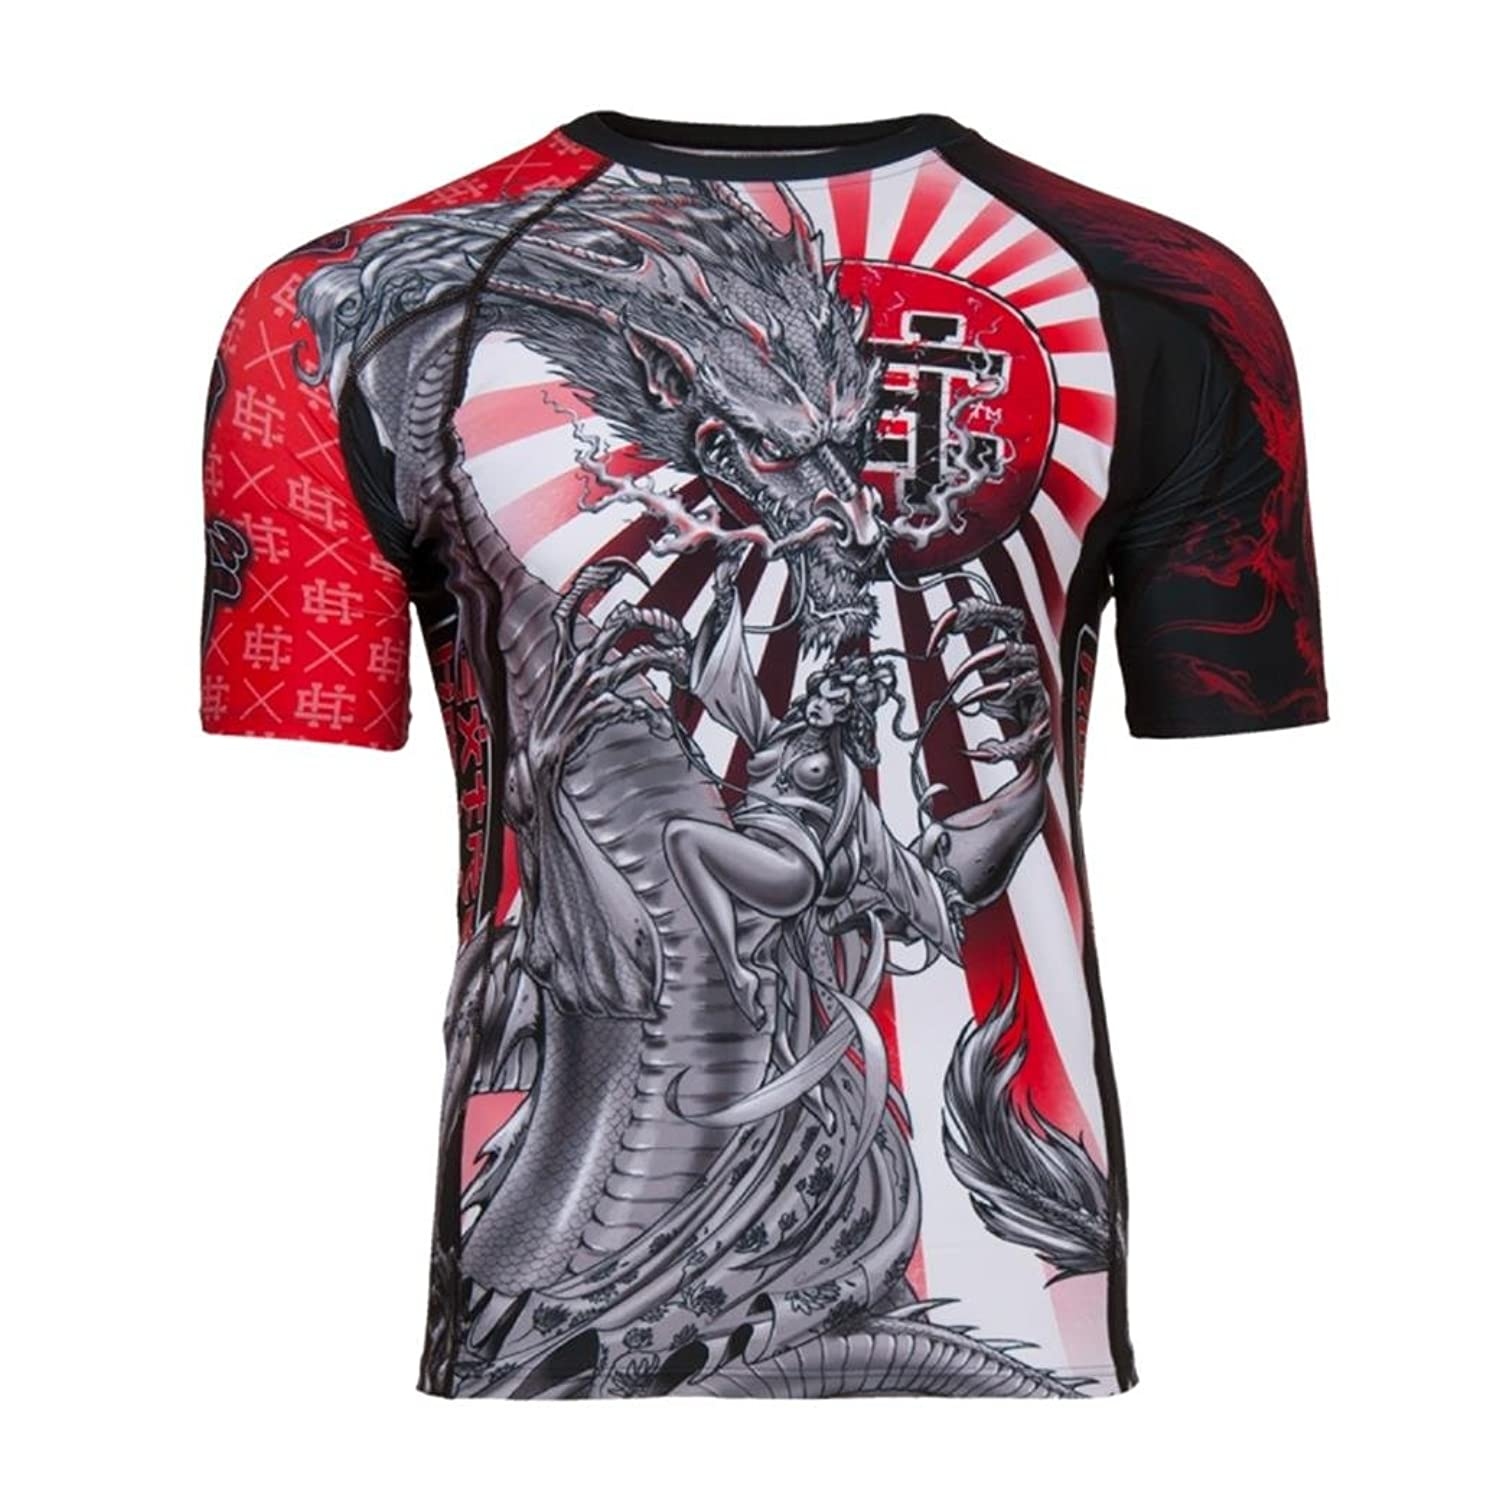 Image of Extreme Hobby Yakuza Short Sleeve Rash Guard Top